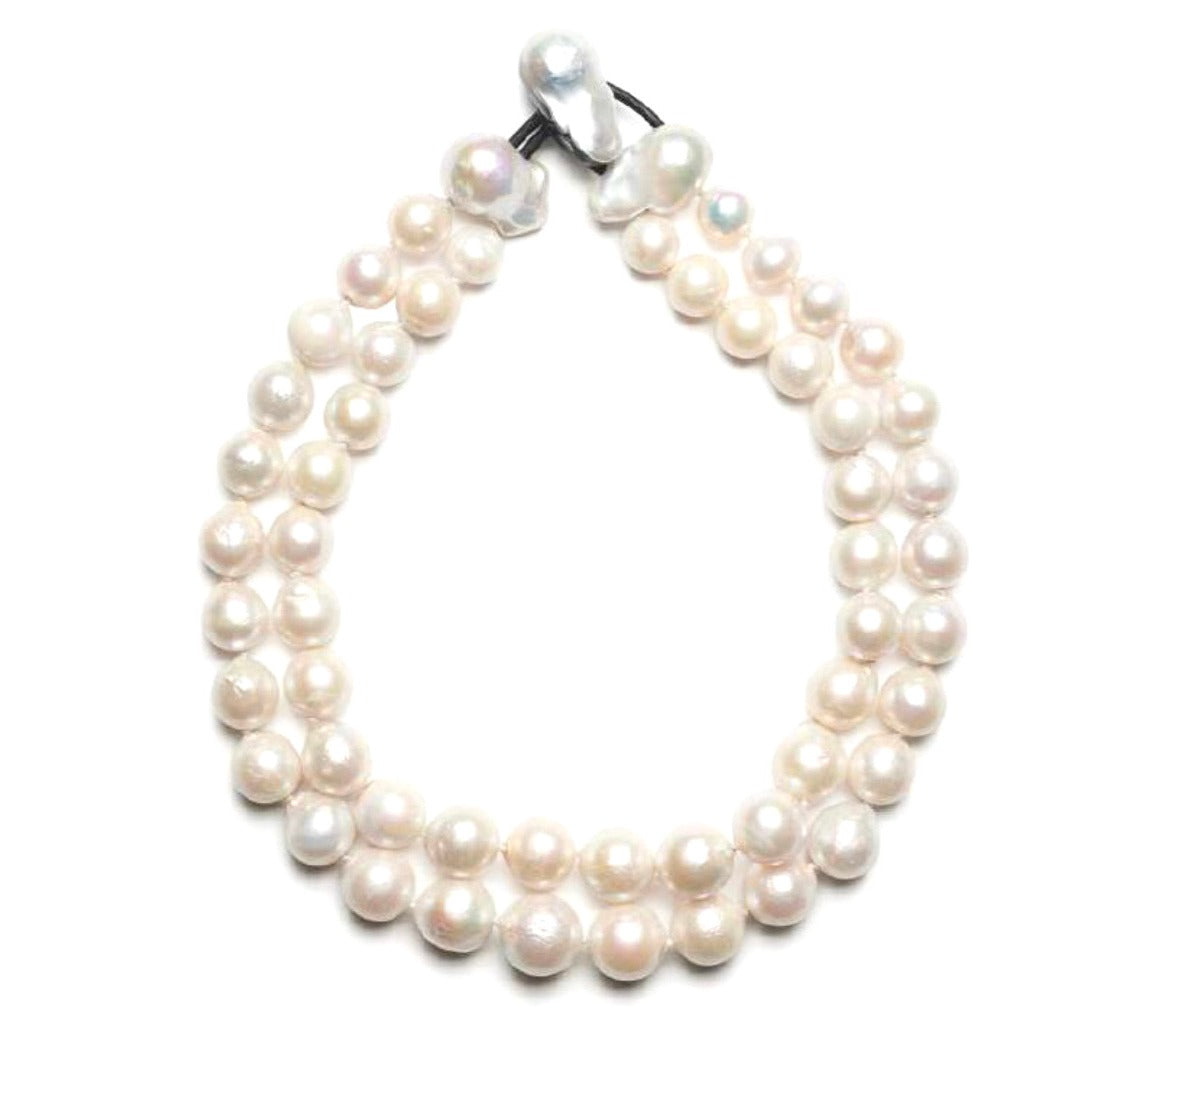 Double Strand Baroque Freshwater Pearls